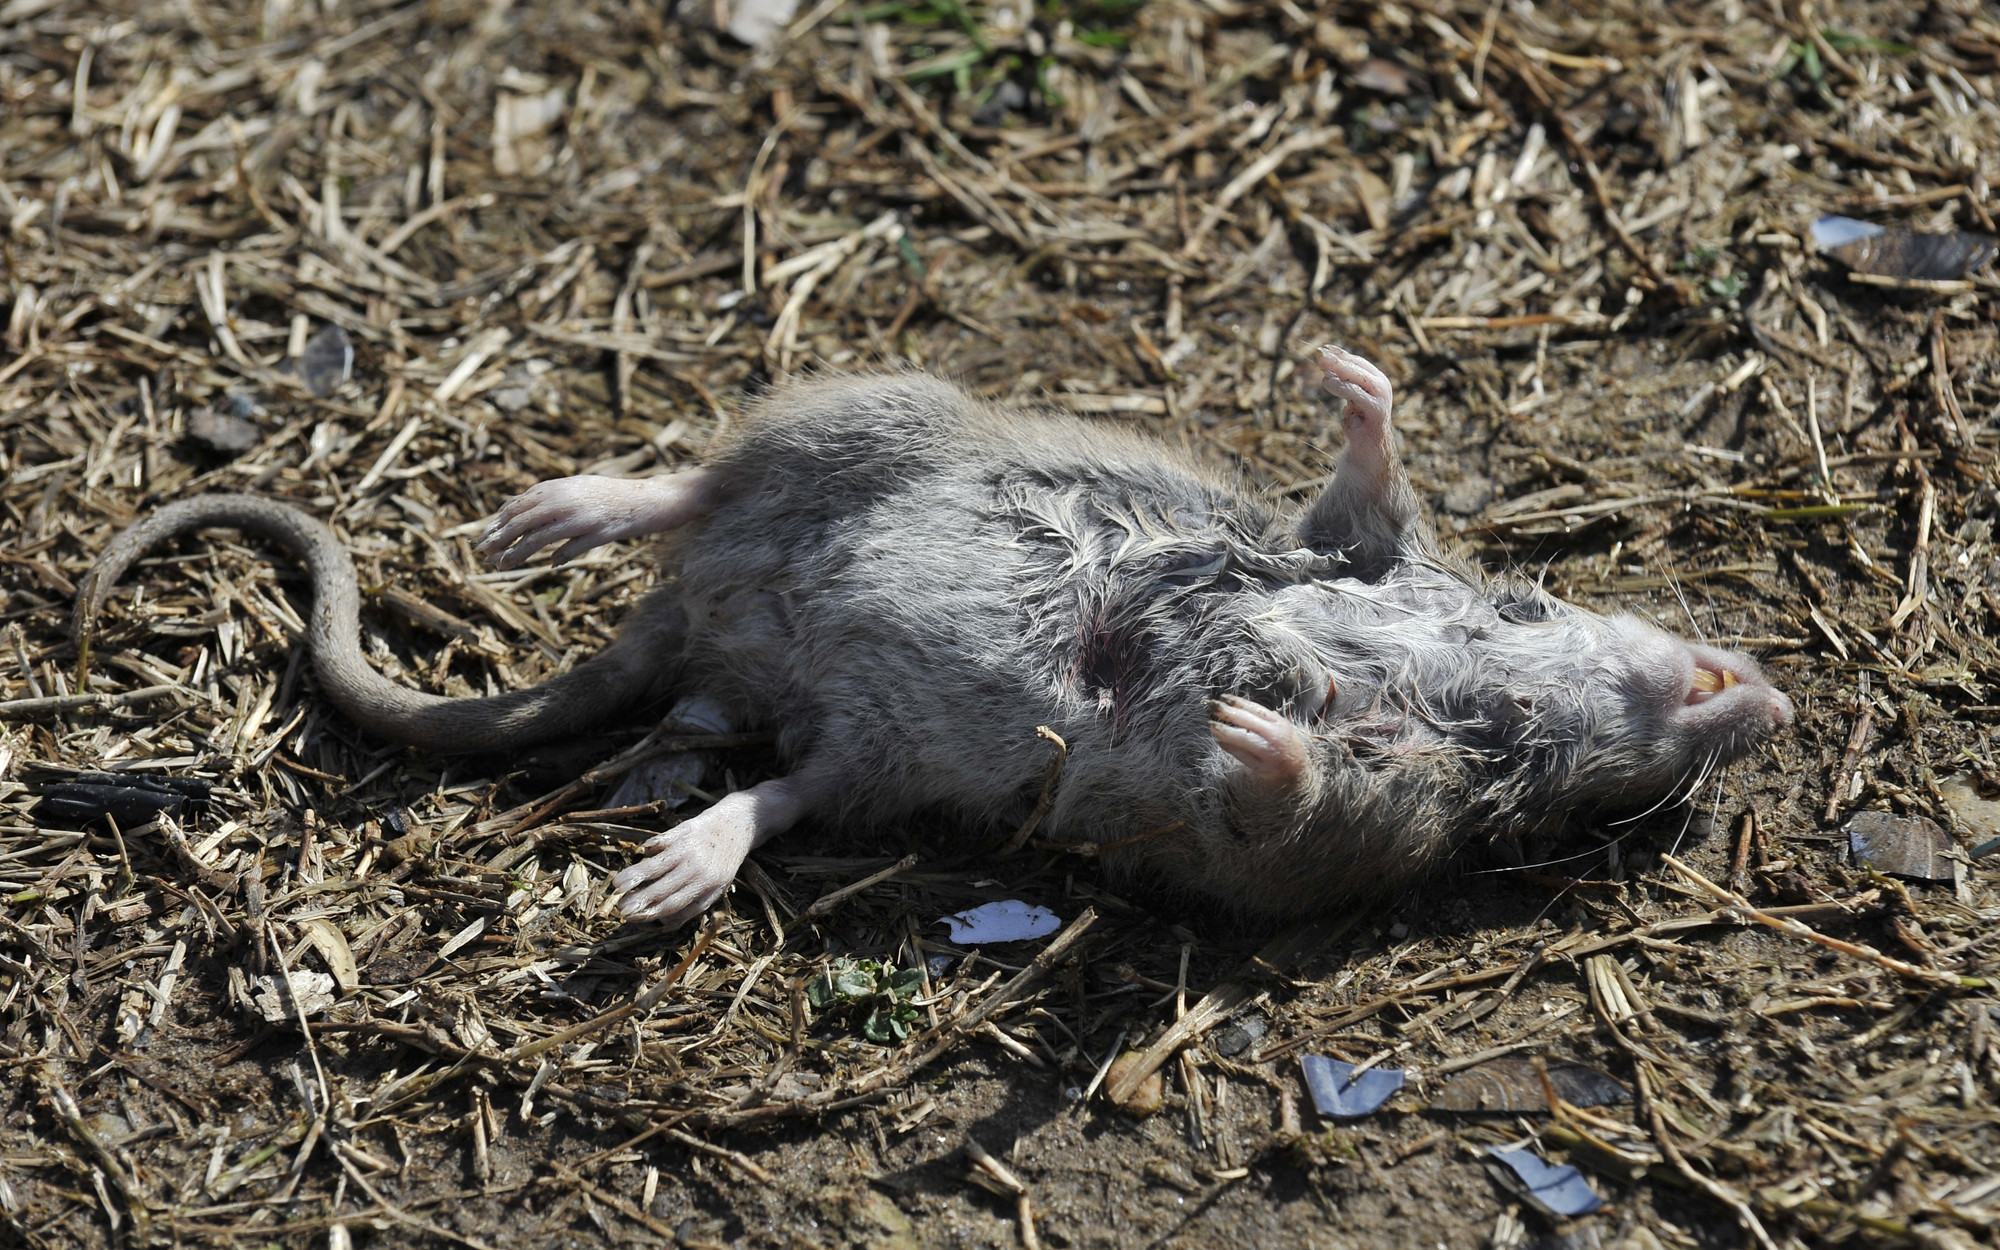 Pictures: Rats in Baltimore County - Dead rat